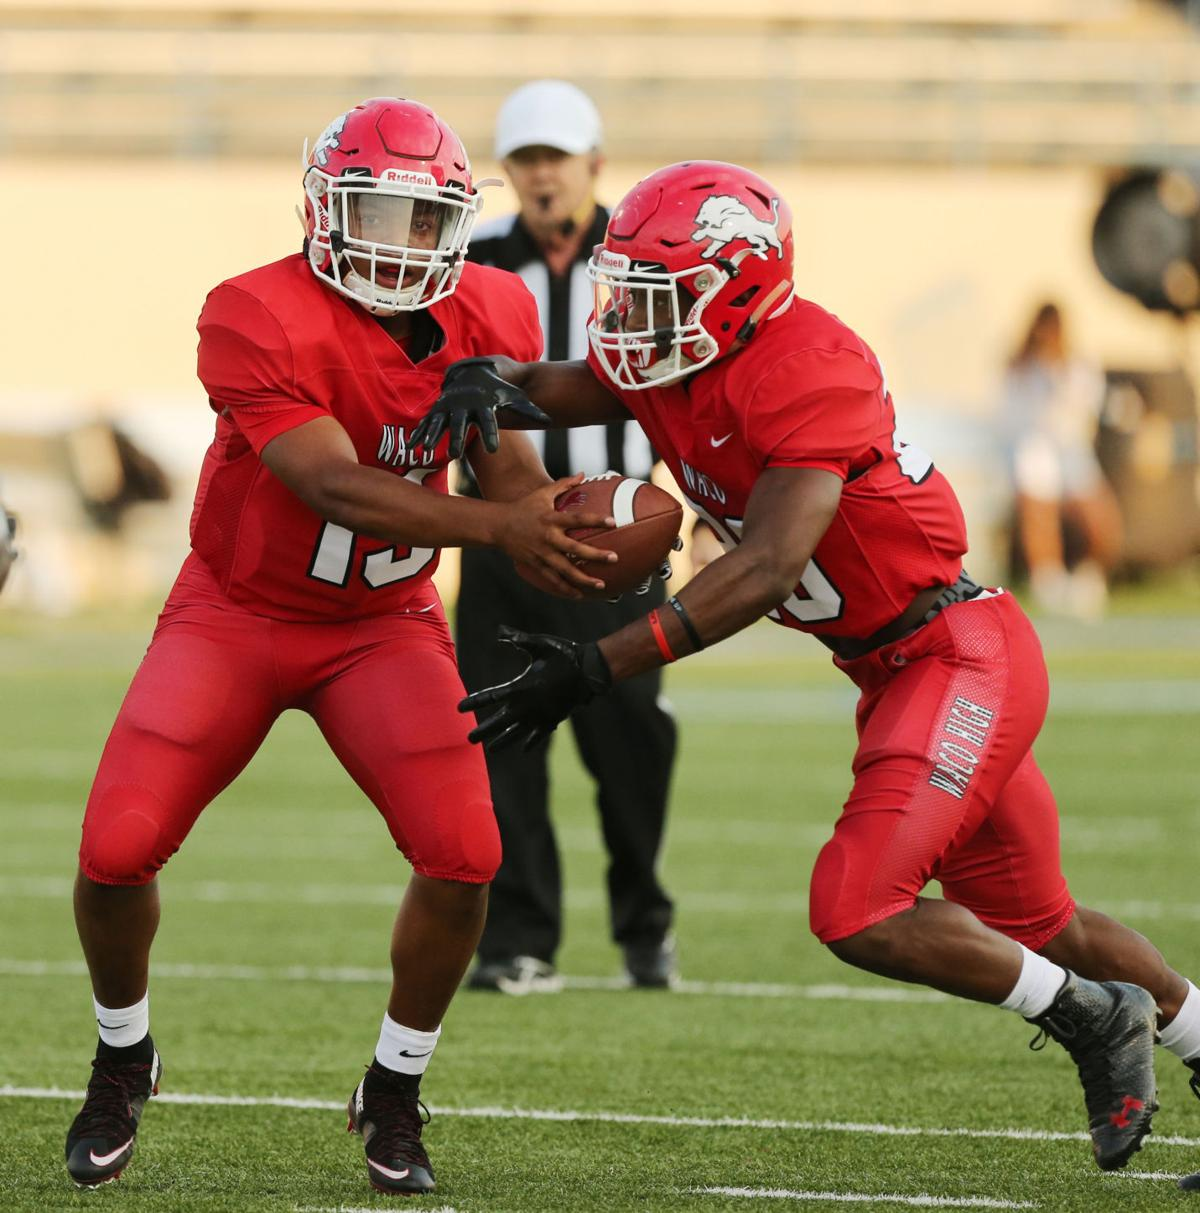 Waco High Lions SA Roosevelt Roughriders